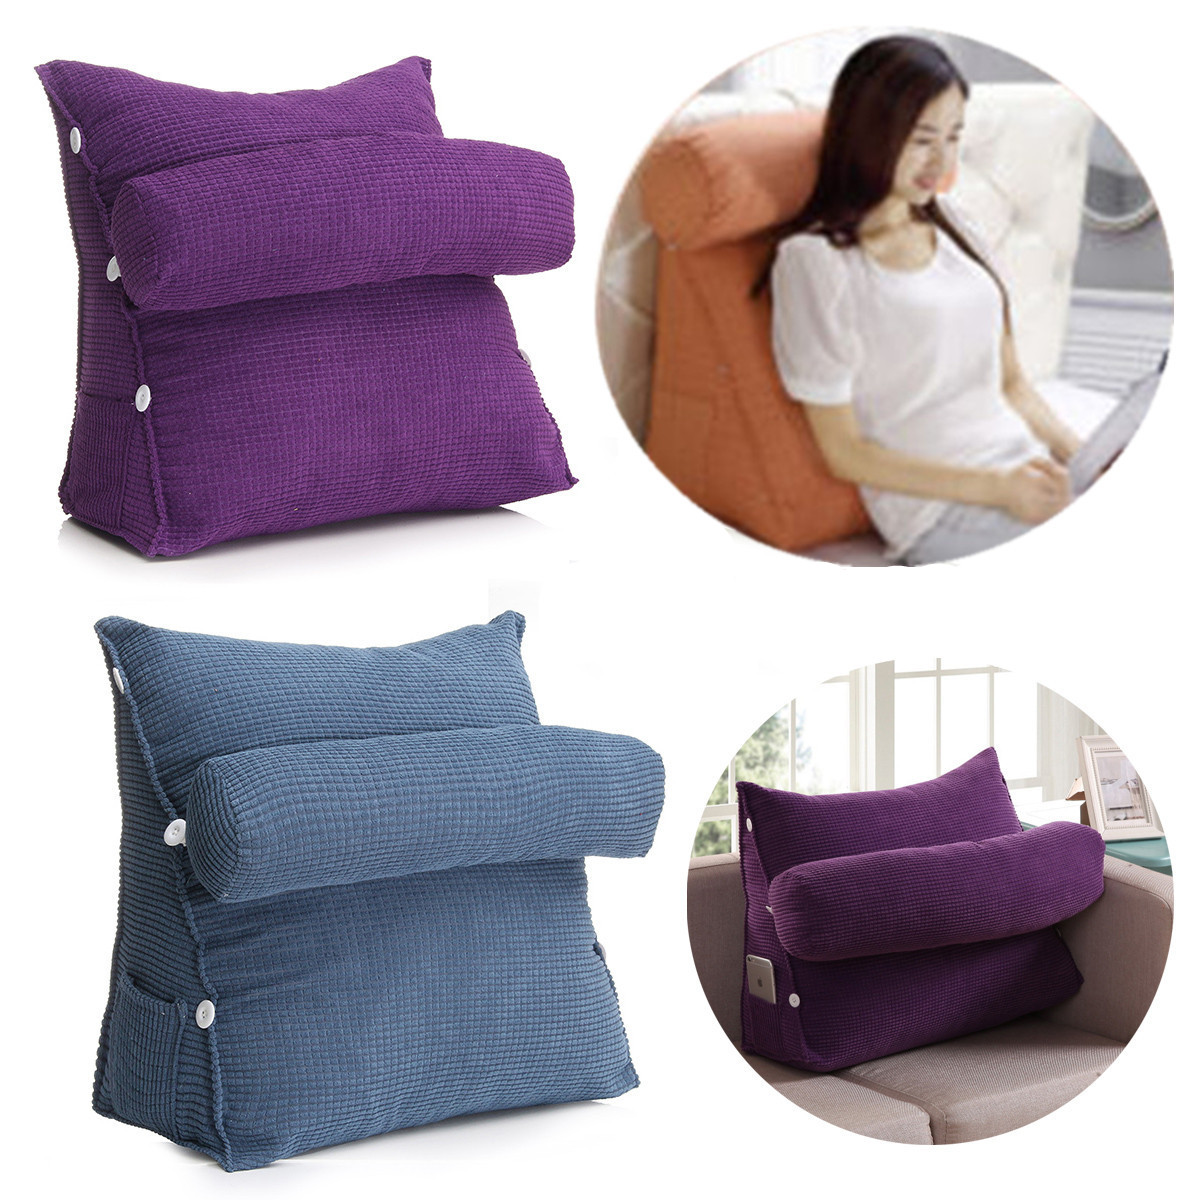 Adjustable Back Wedge Micro Cushion Pillow Sofa Bed Office Chair Rest Waist Neck Support